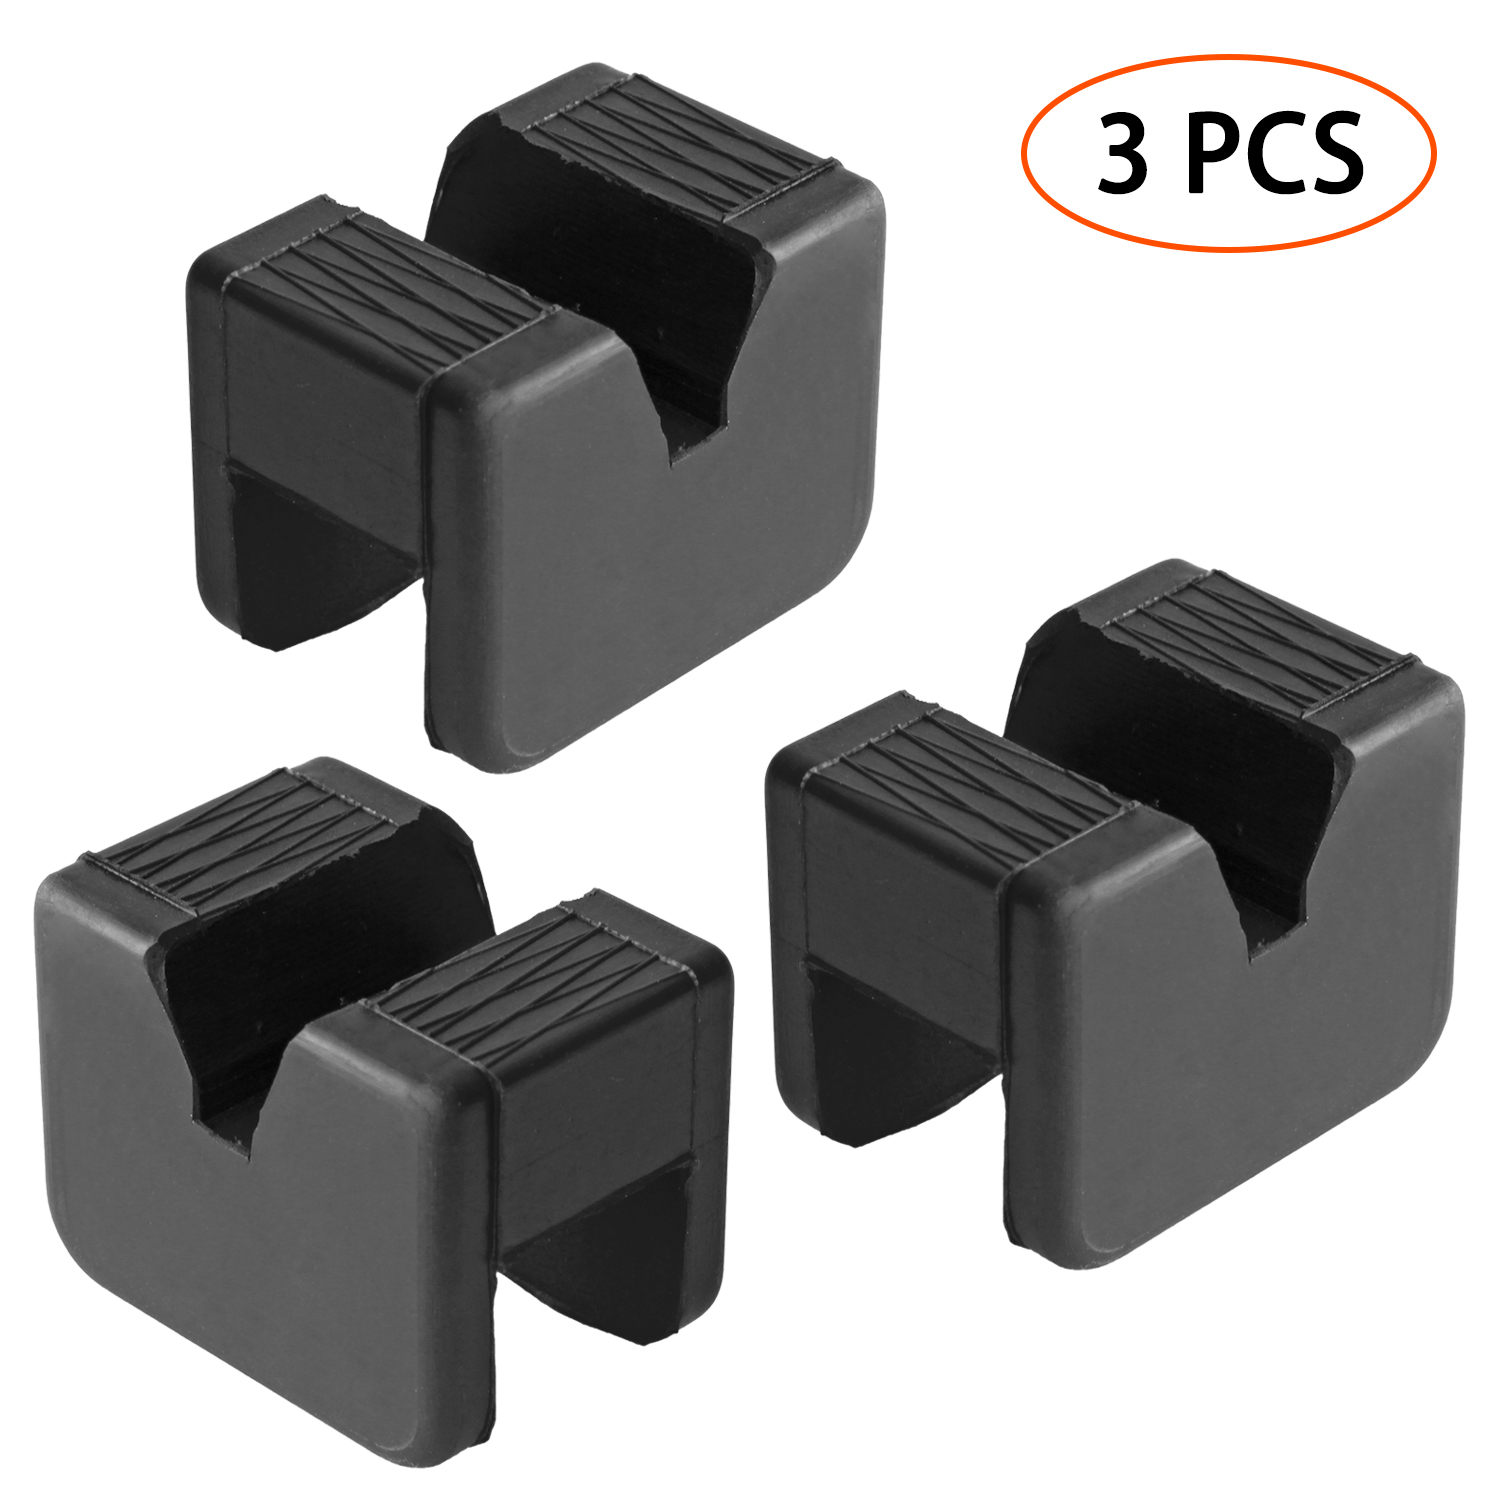 4 Pack Jack Pad Adapter for High Lift Steel Jack Stand 2-3 Ton Universal Rubber Slotted Frame Rail Pinch Weld Protector Car Jack Stand Pad